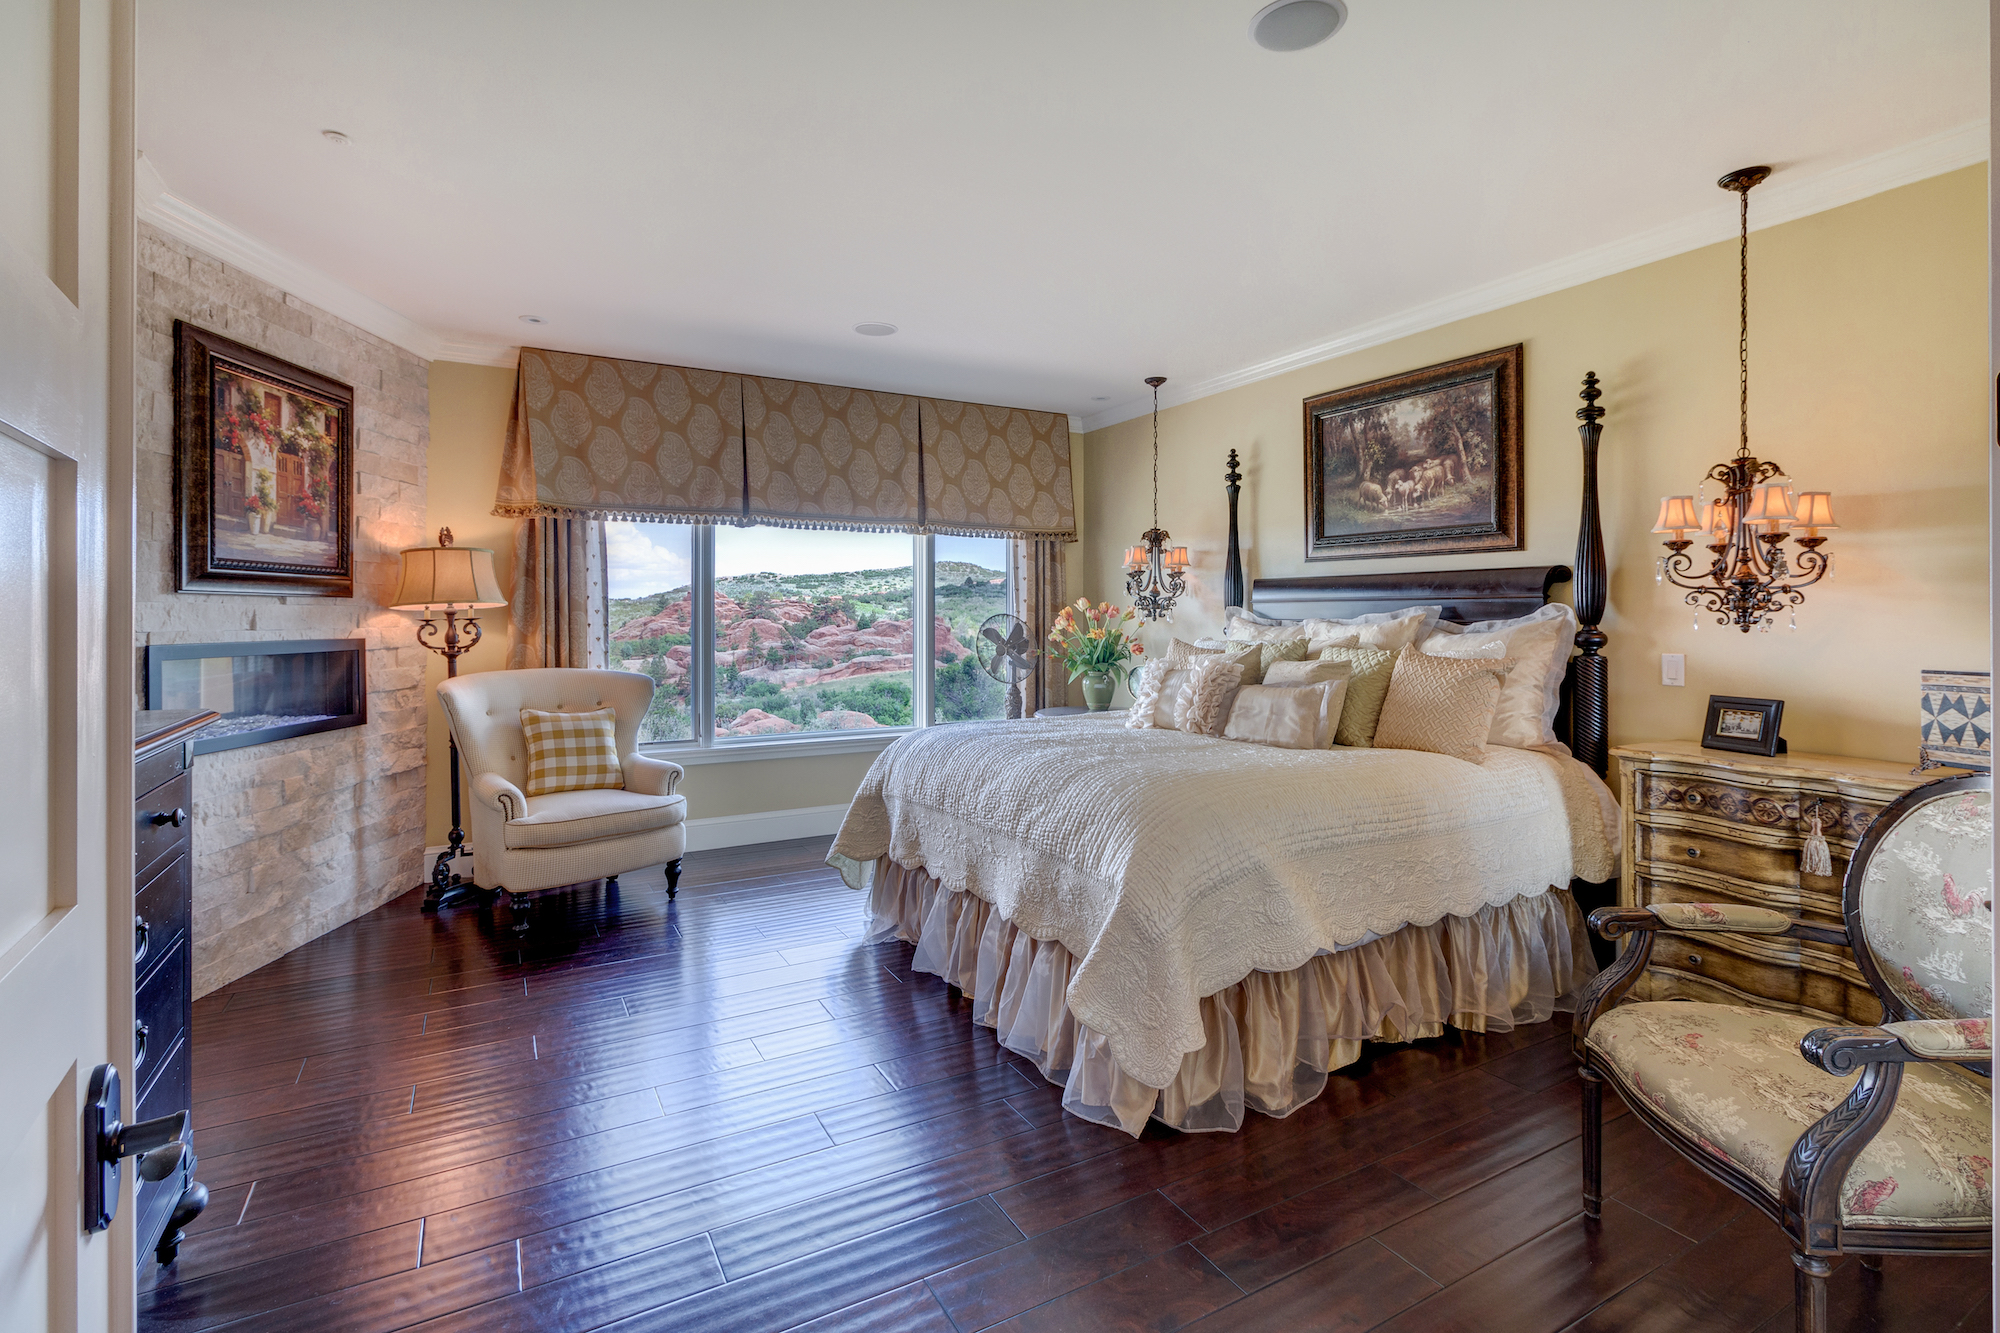 014-Master bedroom with fireplace that also opens to master bath.jpg